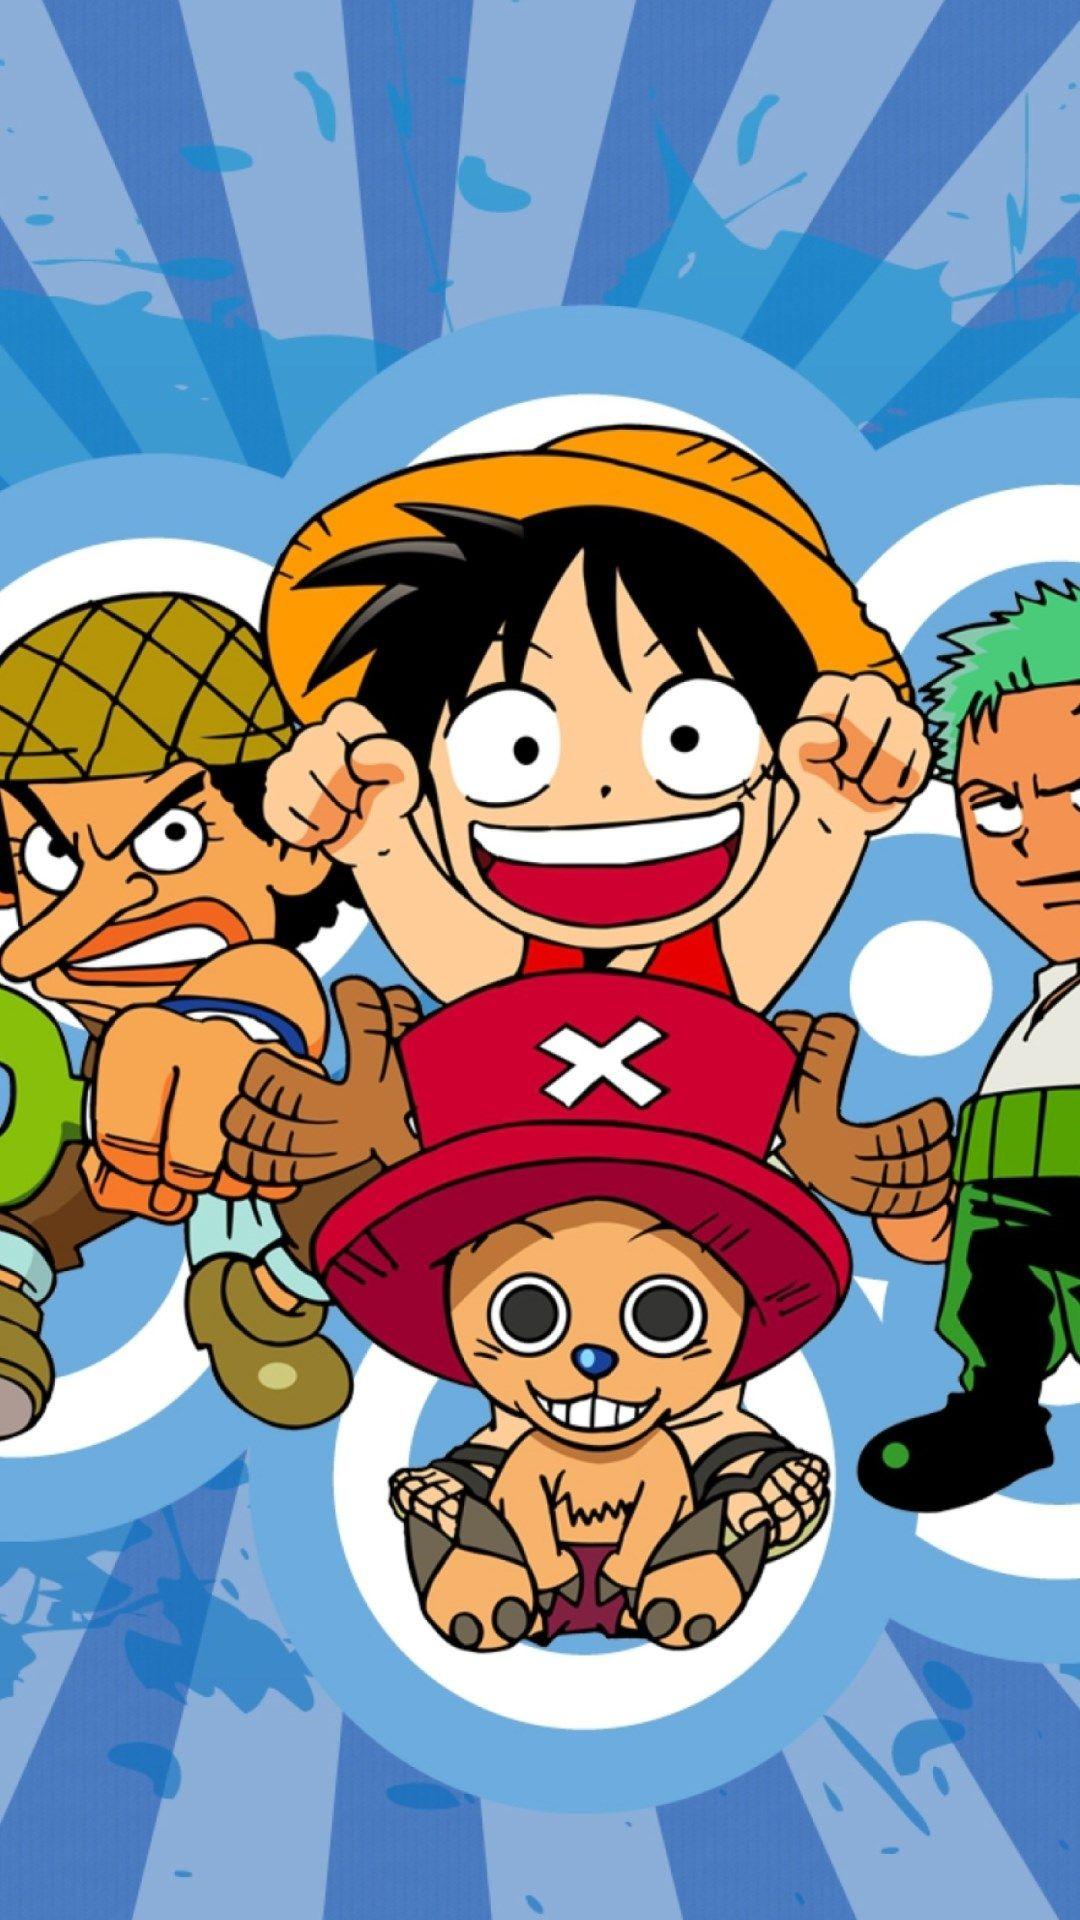 Funny One Piece Iphone Wallpaper One Piece Wallpaper Iphone Android Wallpaper Anime Iphone Wallpaper